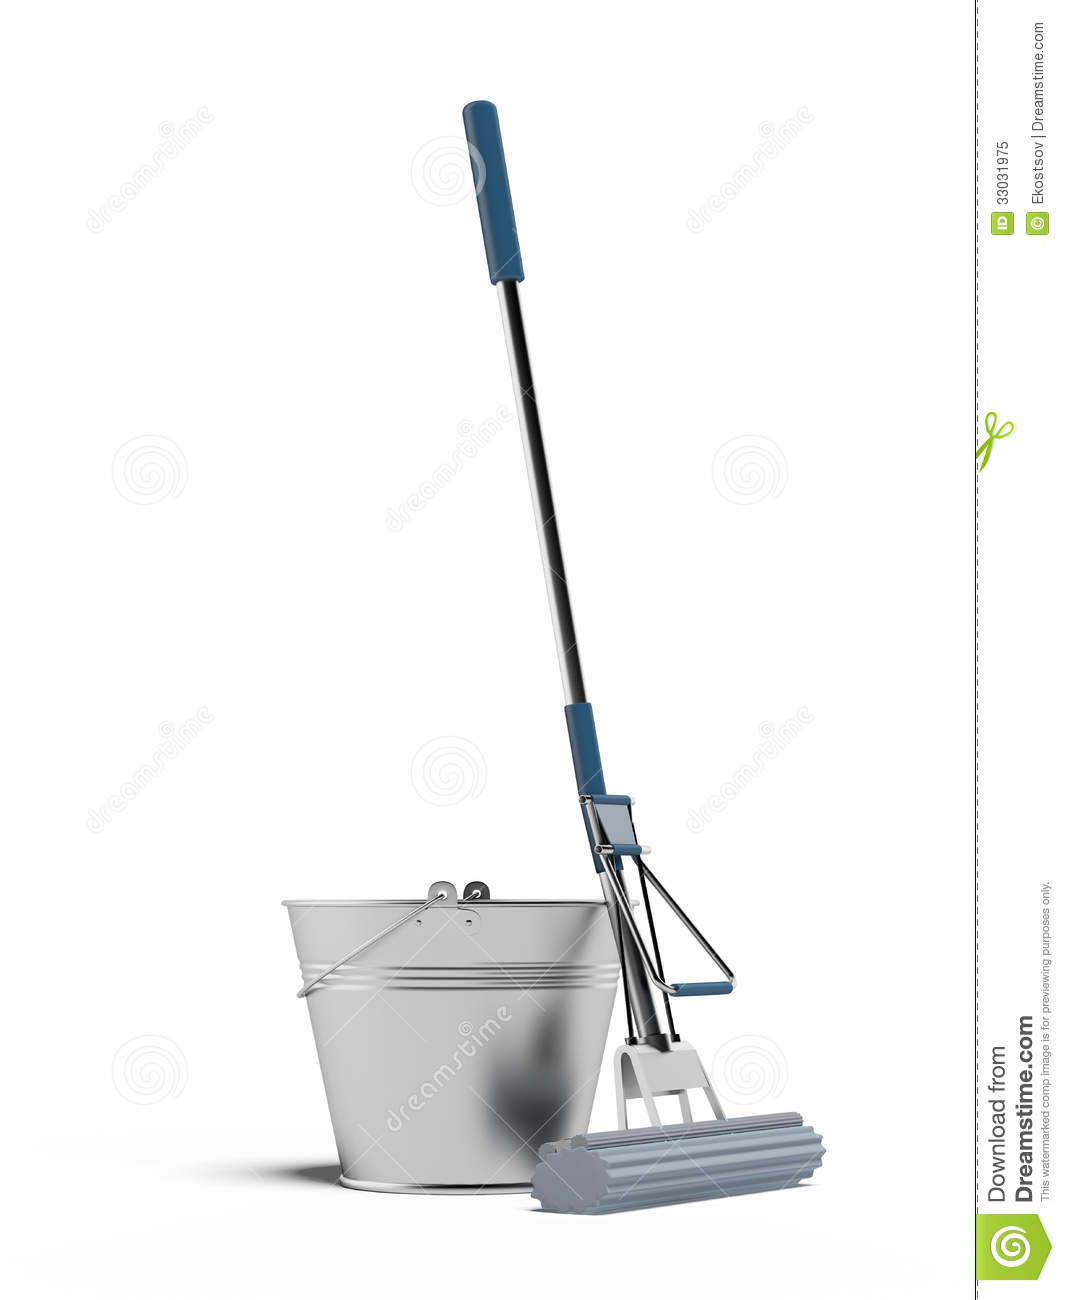 Cleaning Mop And Bucket Royalty Free Stock Photo  Image: 33031975